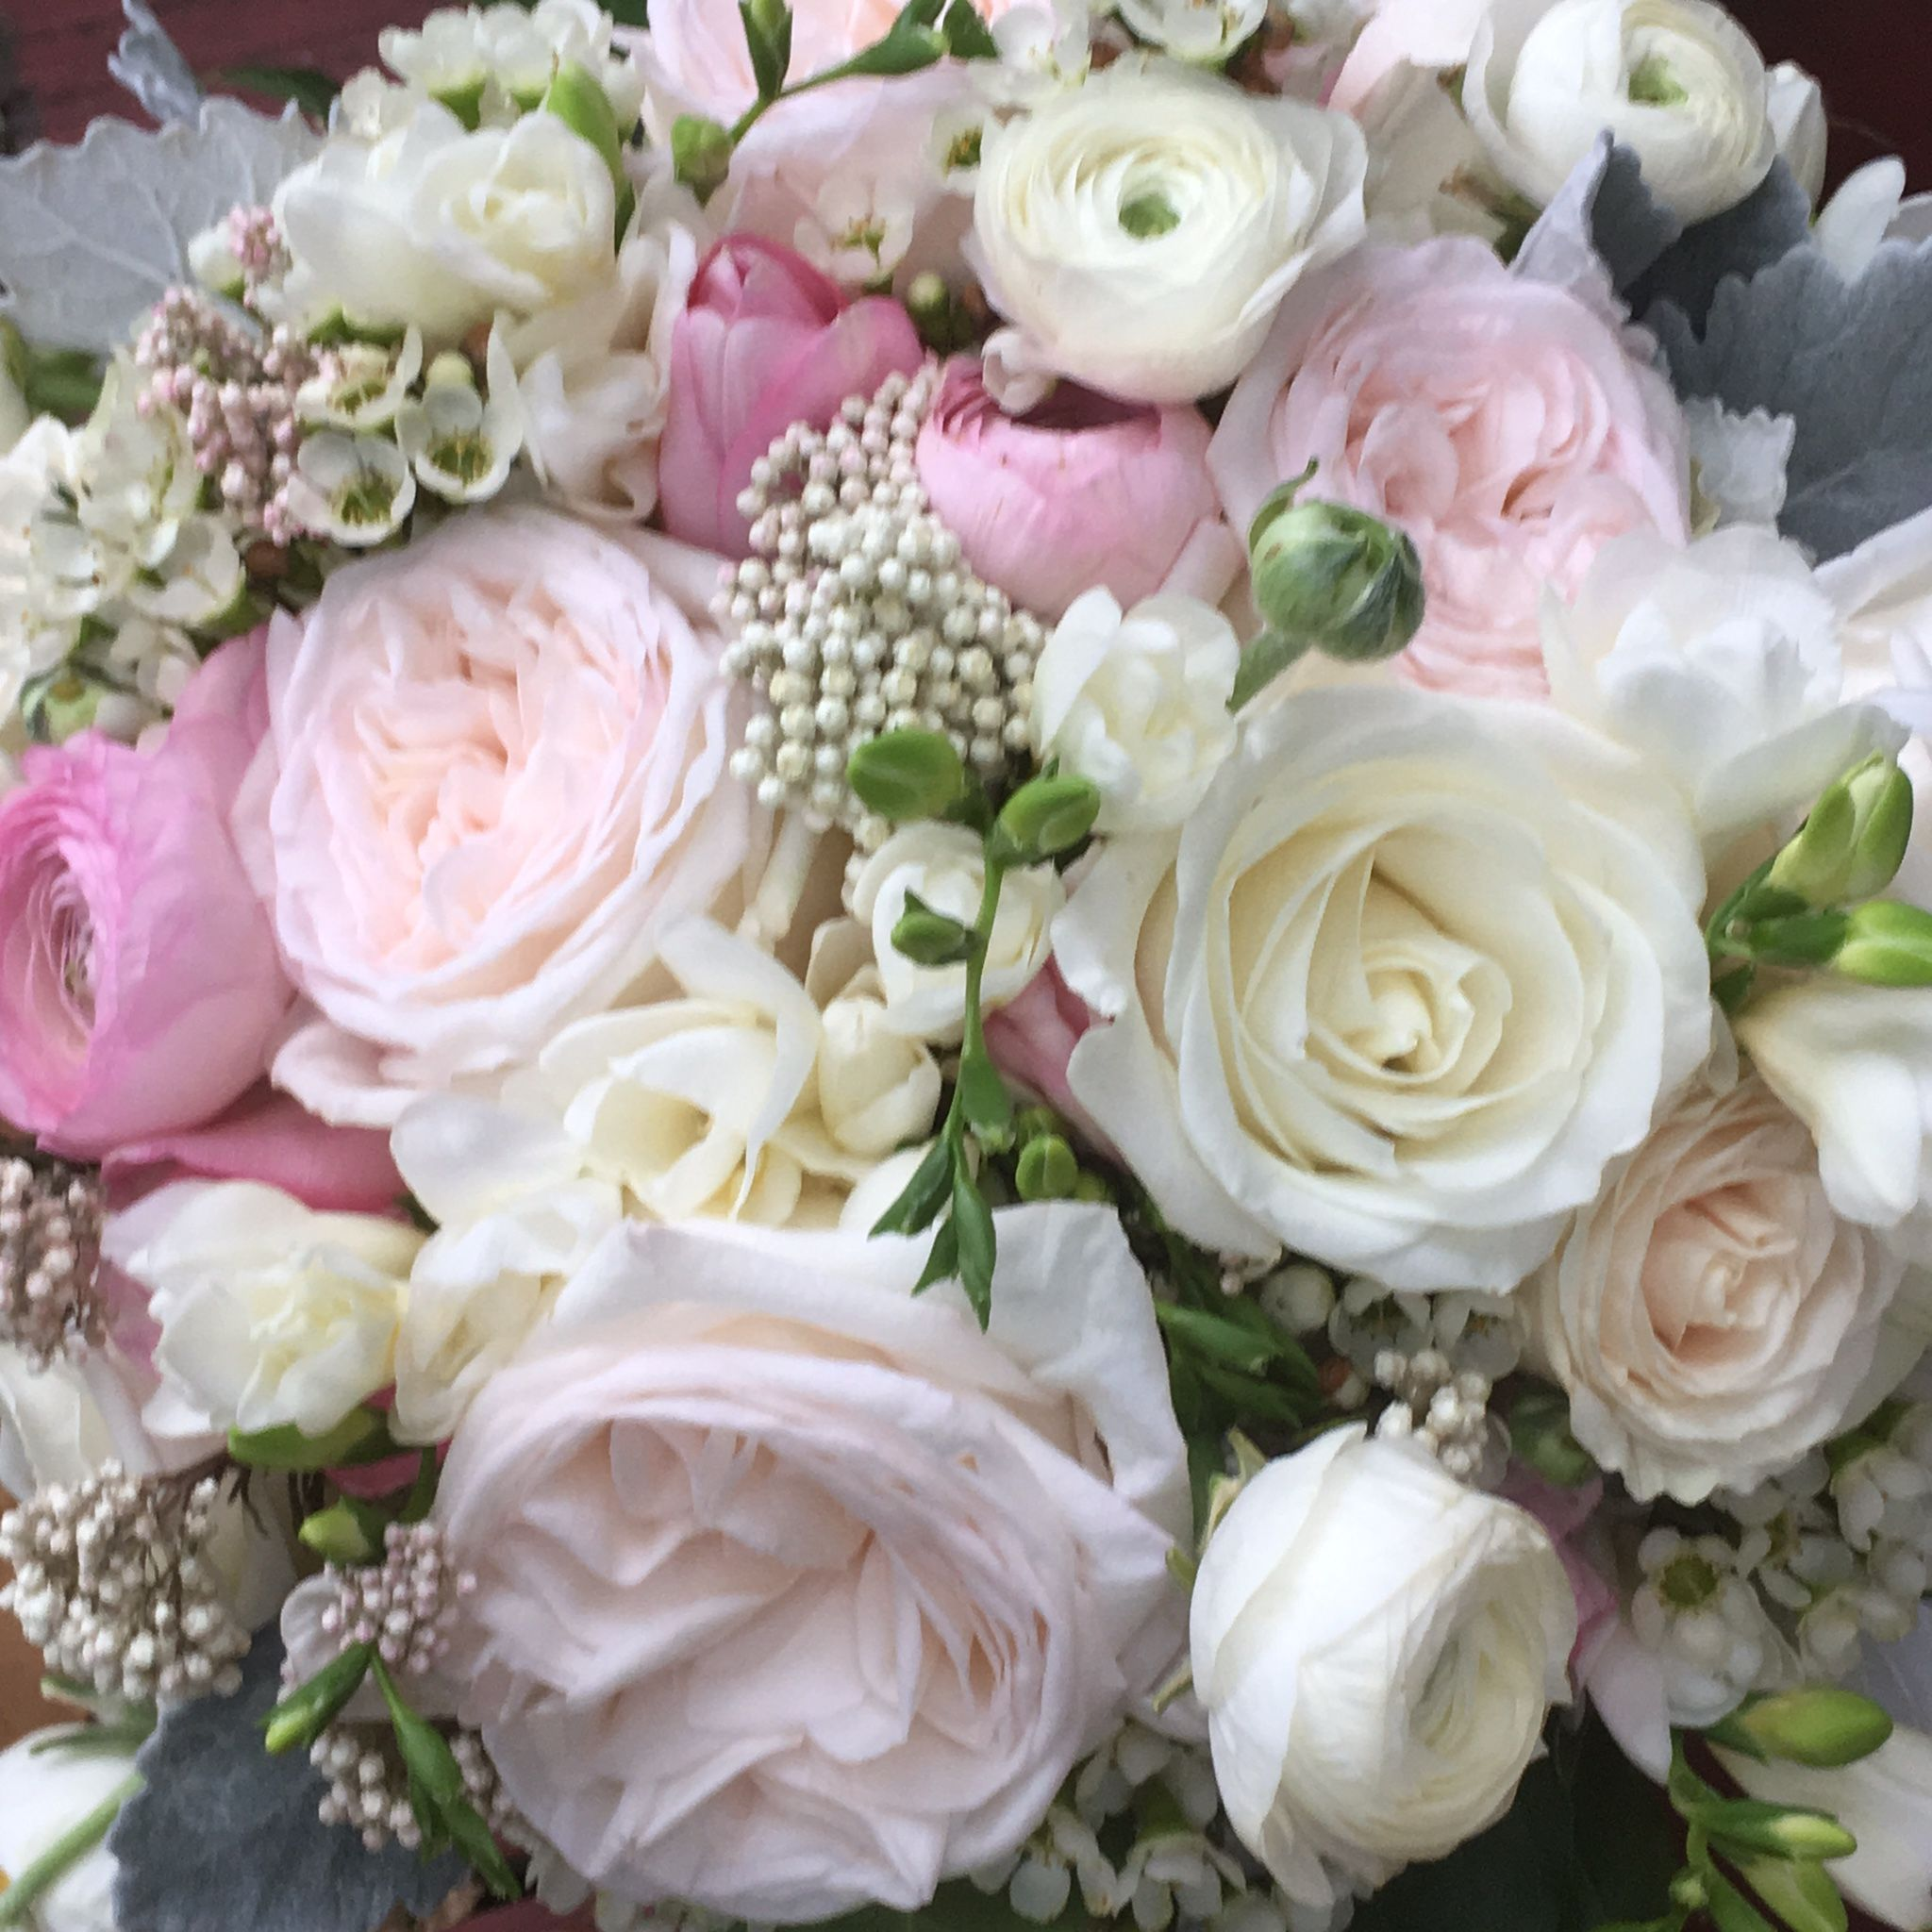 O Hara Garden Roses And Tibet Roses Ranunculus Wax Flower And Dusty Miller Wax Flowers Flowers Summer Flowers